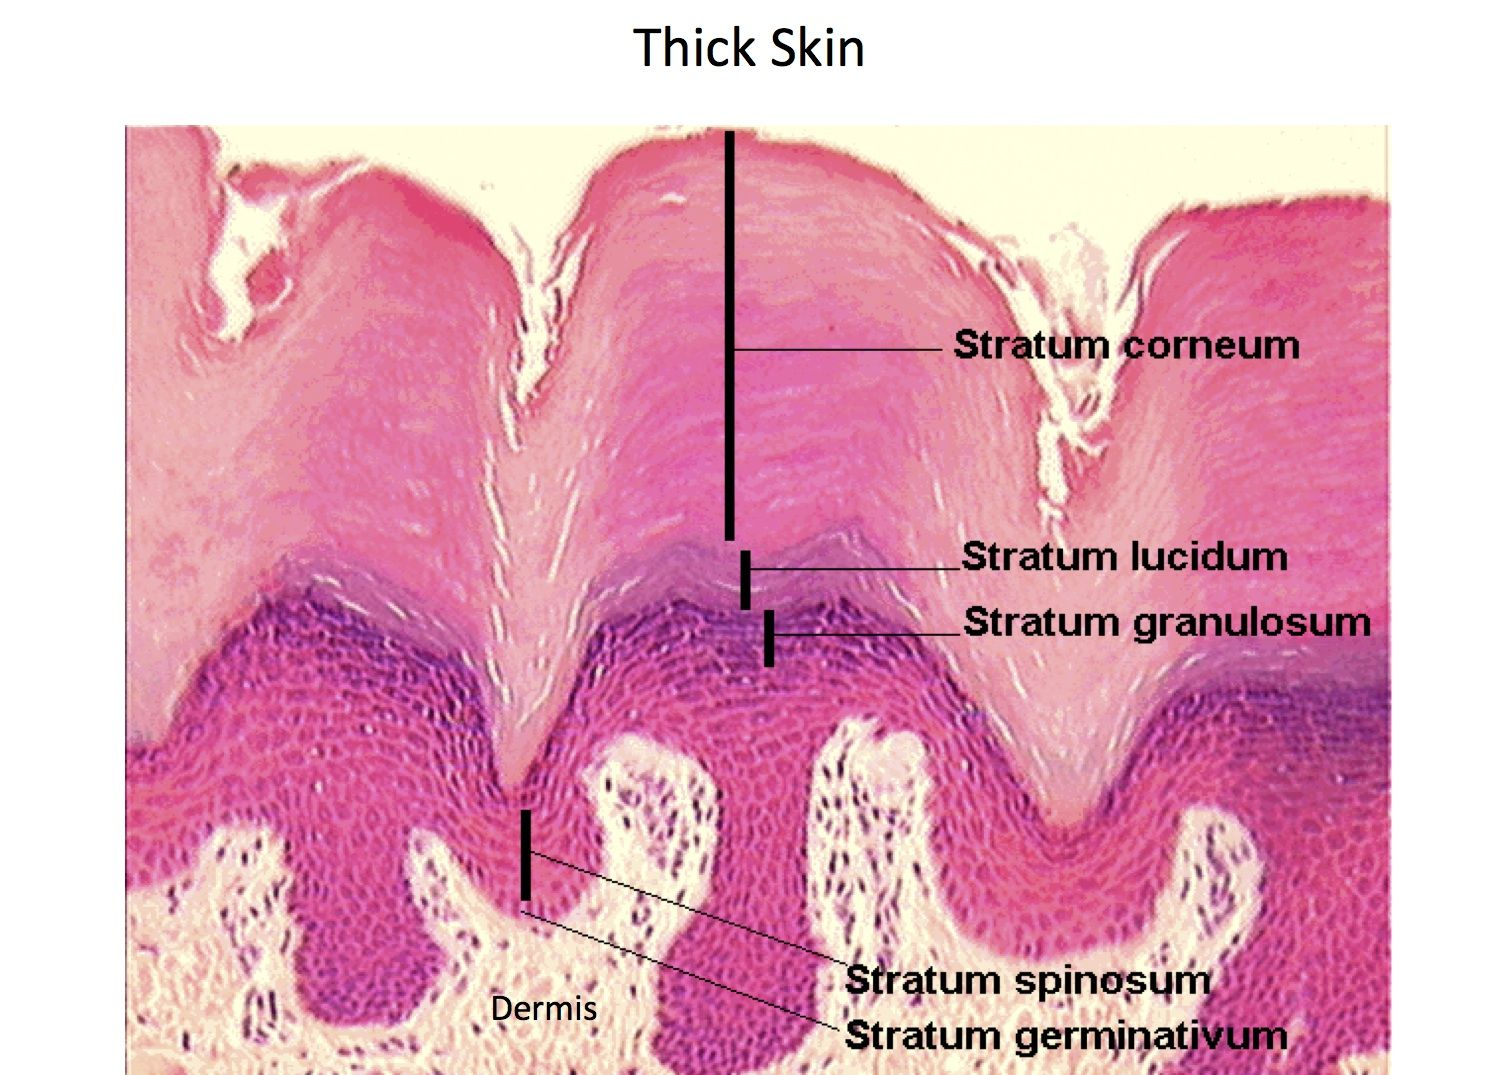 Thick Skin - Epidermal Layers - Histology | Histology - Skin ...